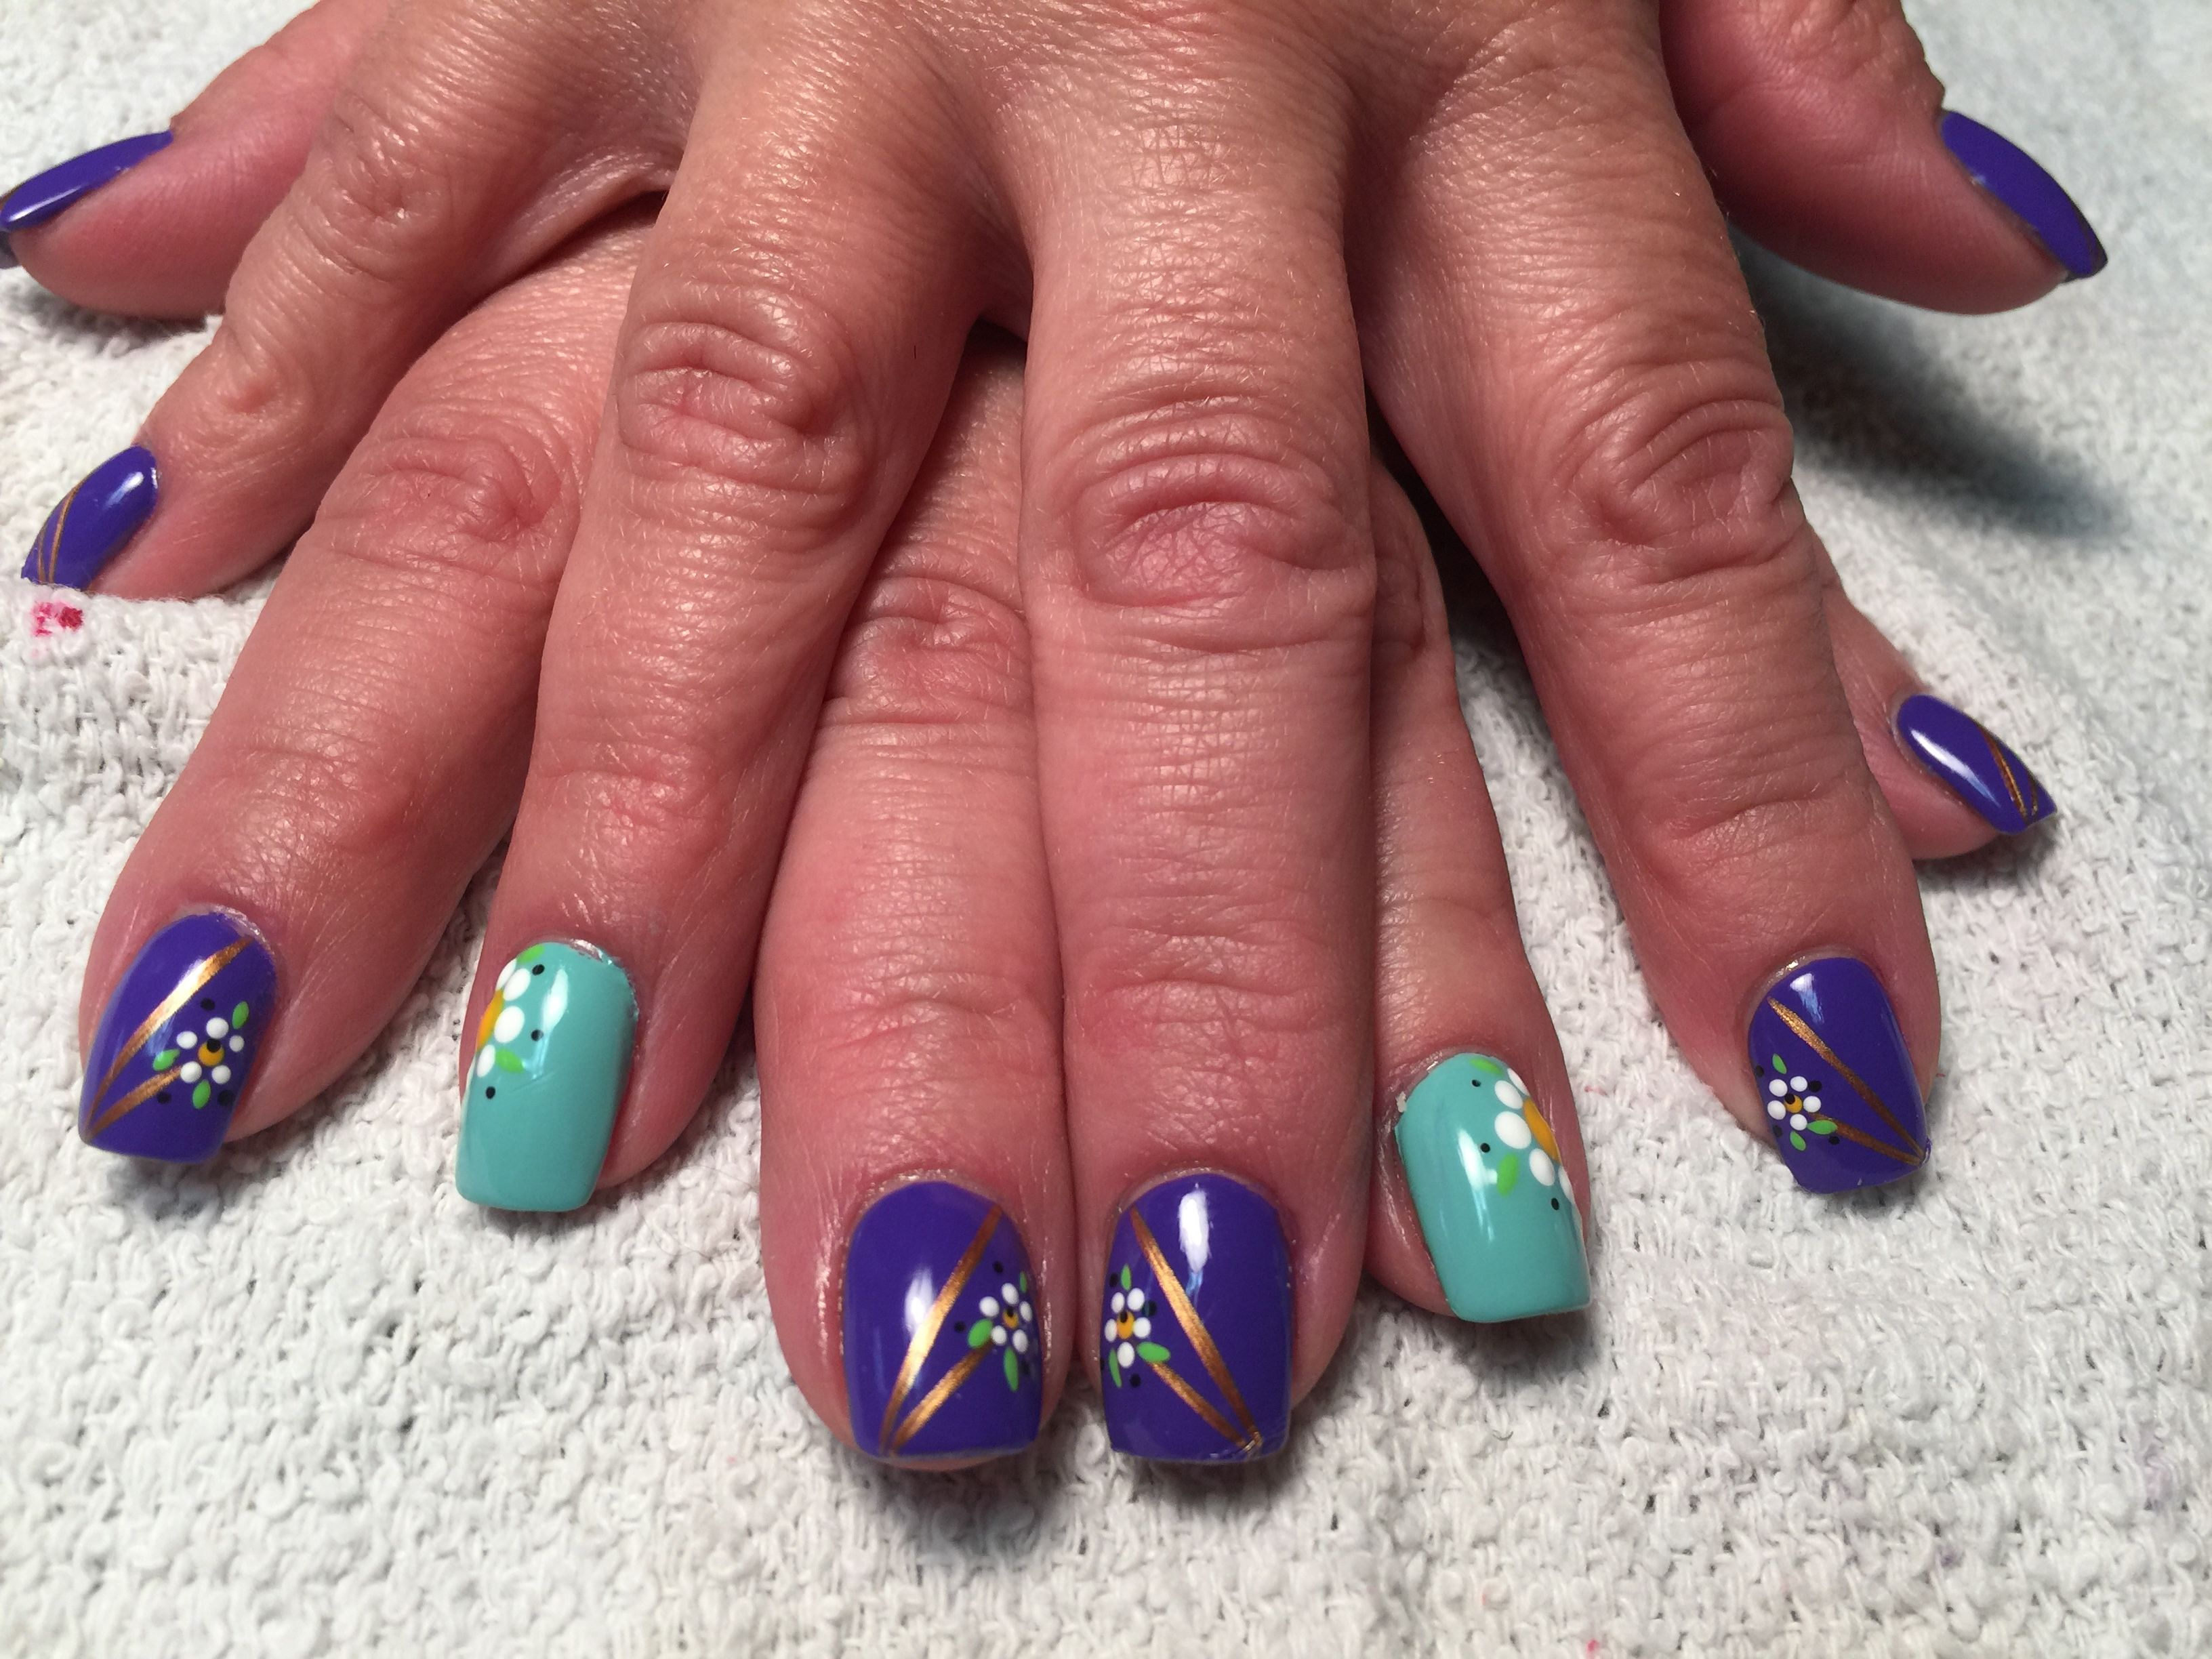 Free hand nail art by penny brown miss lorrice nail art by penny